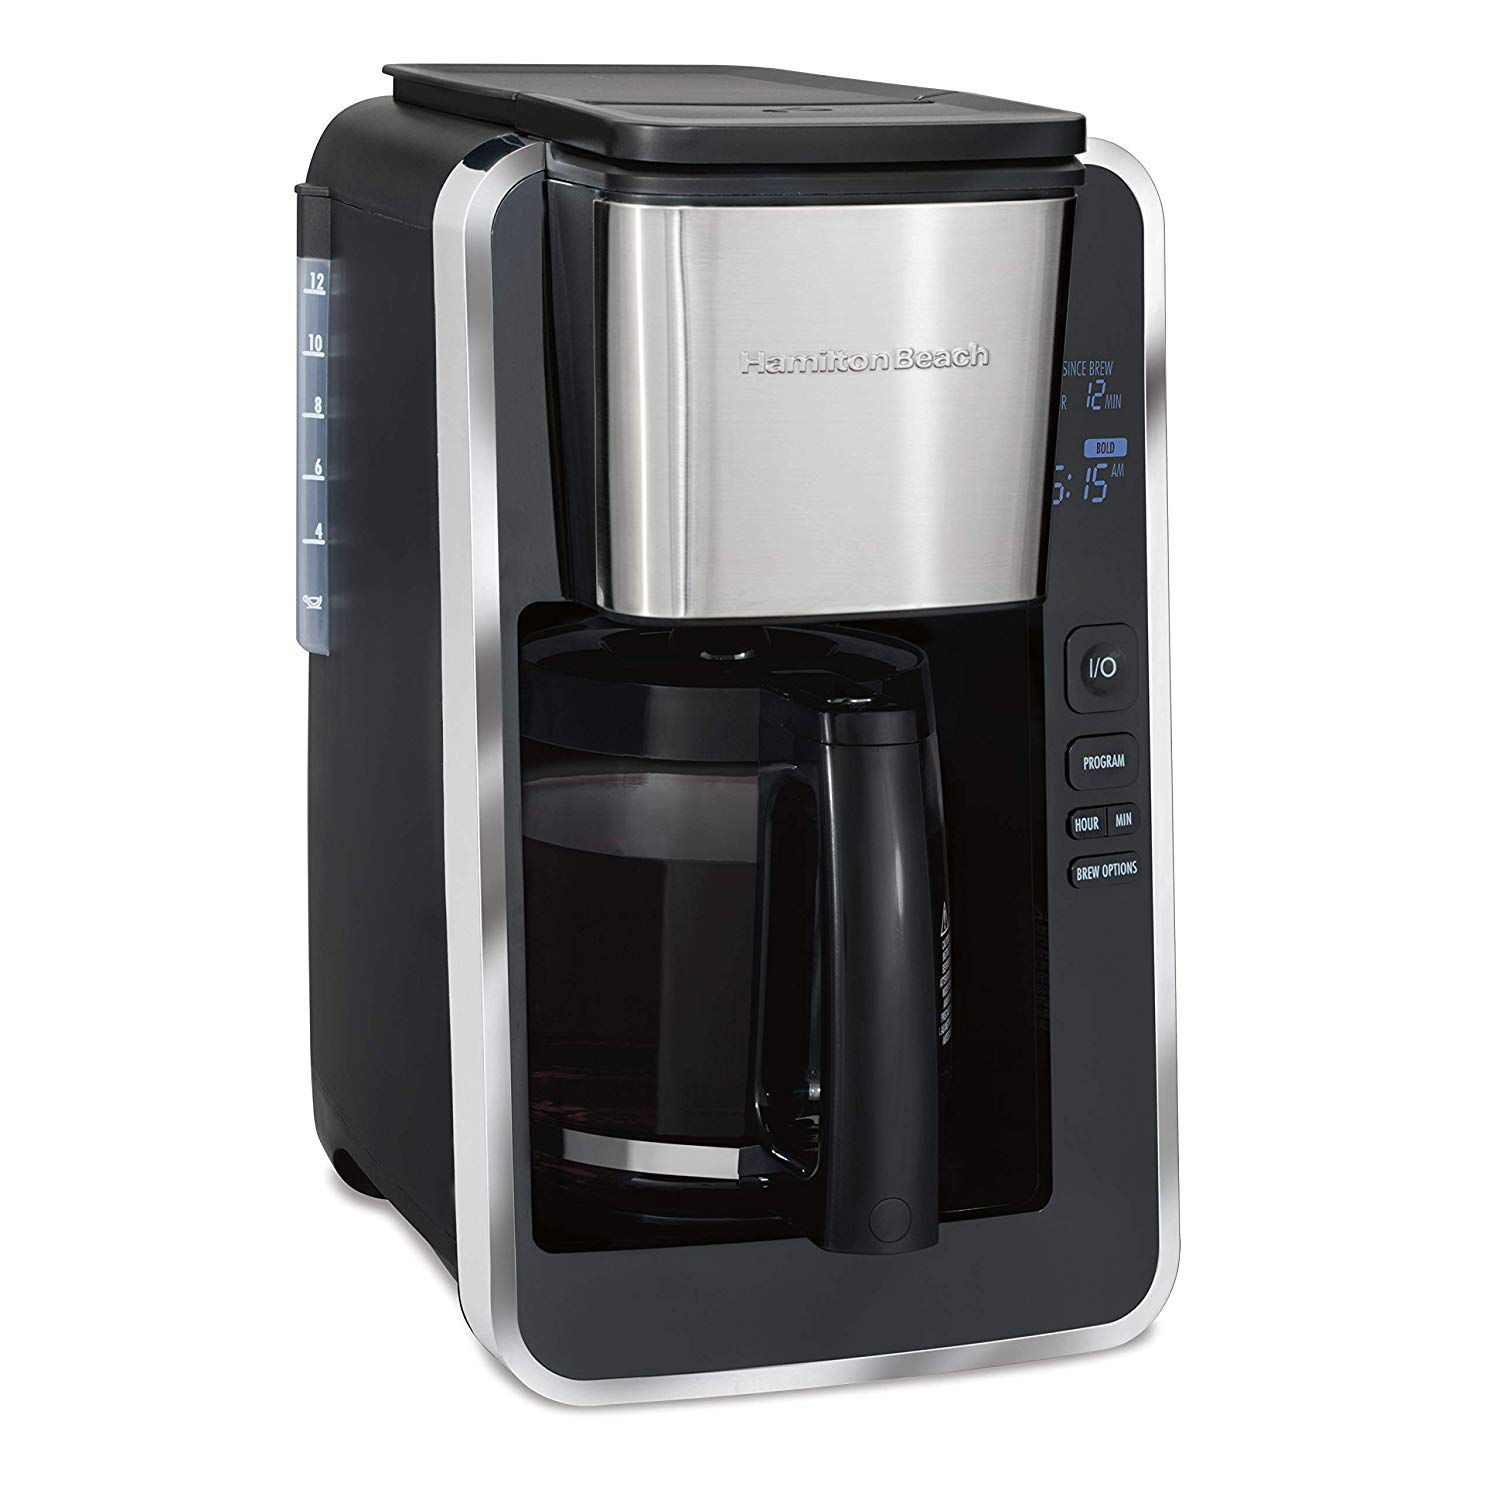 Hamilton Beach Programmable 12 Cup Coffee Maker, Easy Front Access Deluxe, Brew Options, Black and Stainless (46320), by Hamilton Beach (Image #1)